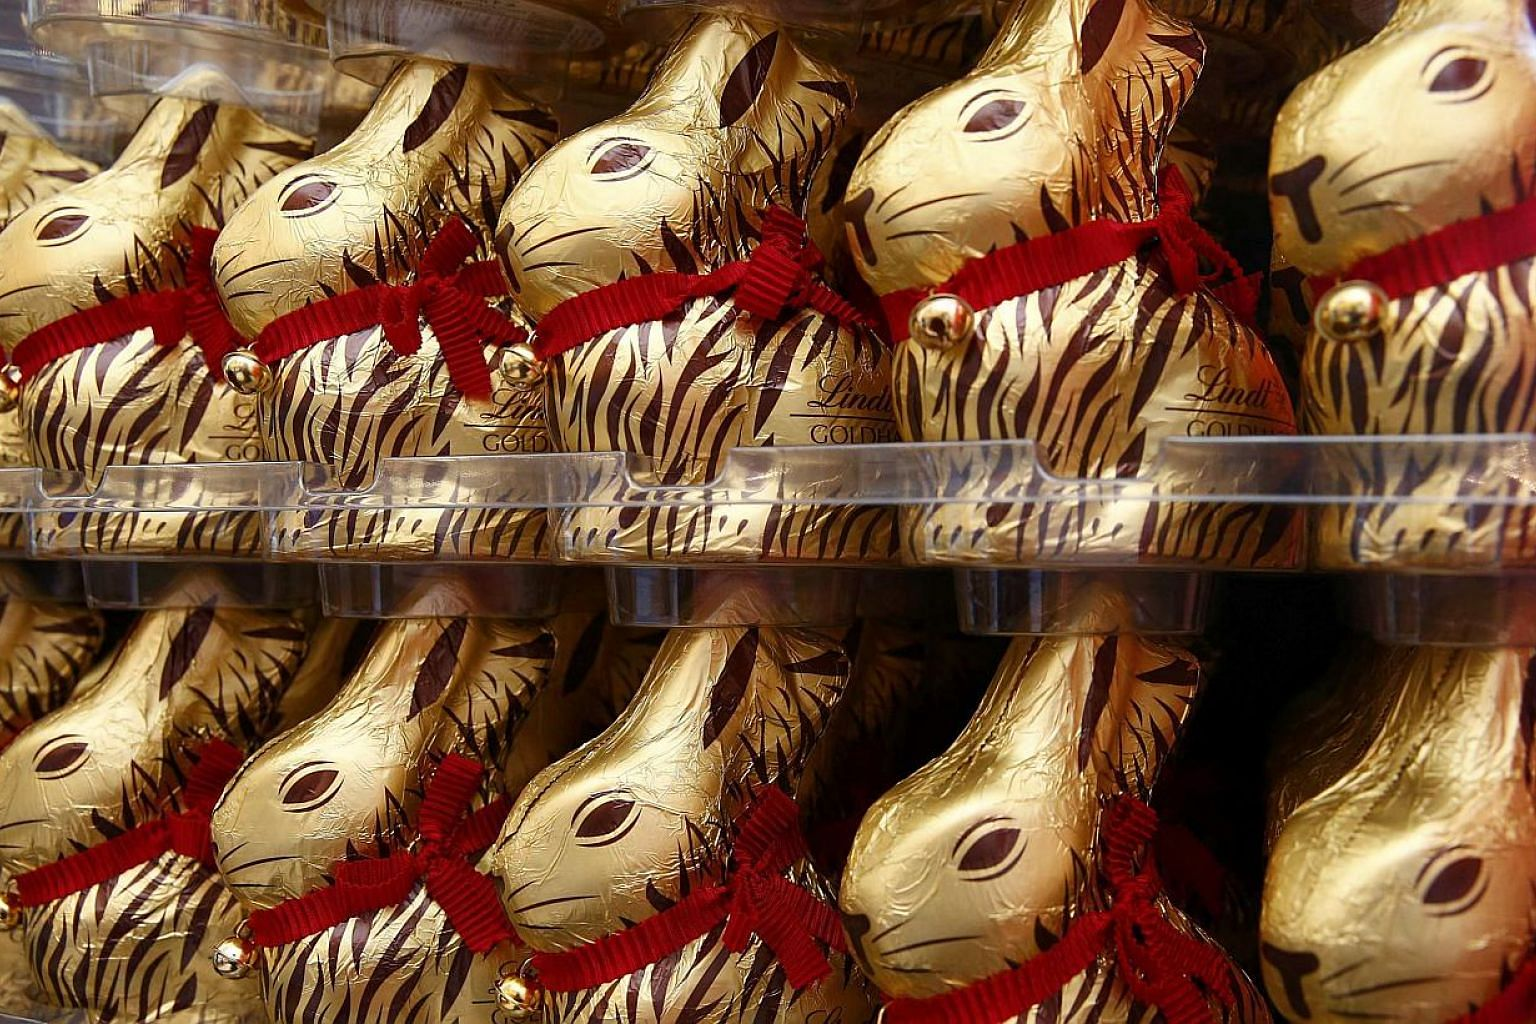 Gold-wrapped Easter chocolate bunnies are displayed during the annual news conference of Swiss chocolatier Lindt & Spruengli in Kilchberg near Zurich on March 10, 2015. --PHOTO: REUTERS